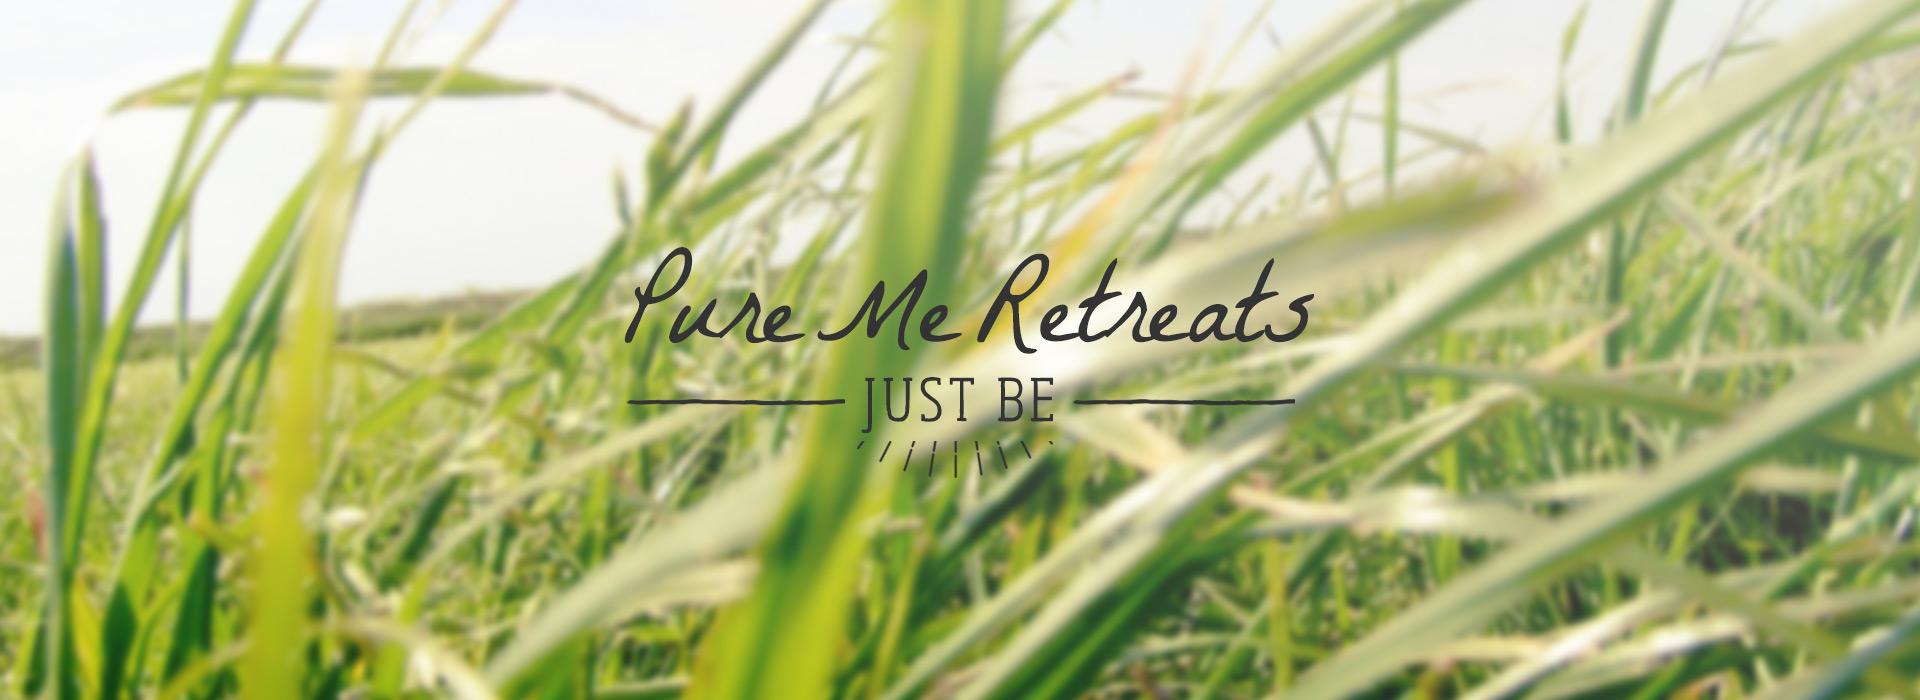 Pure-Me-Retreats-slider3